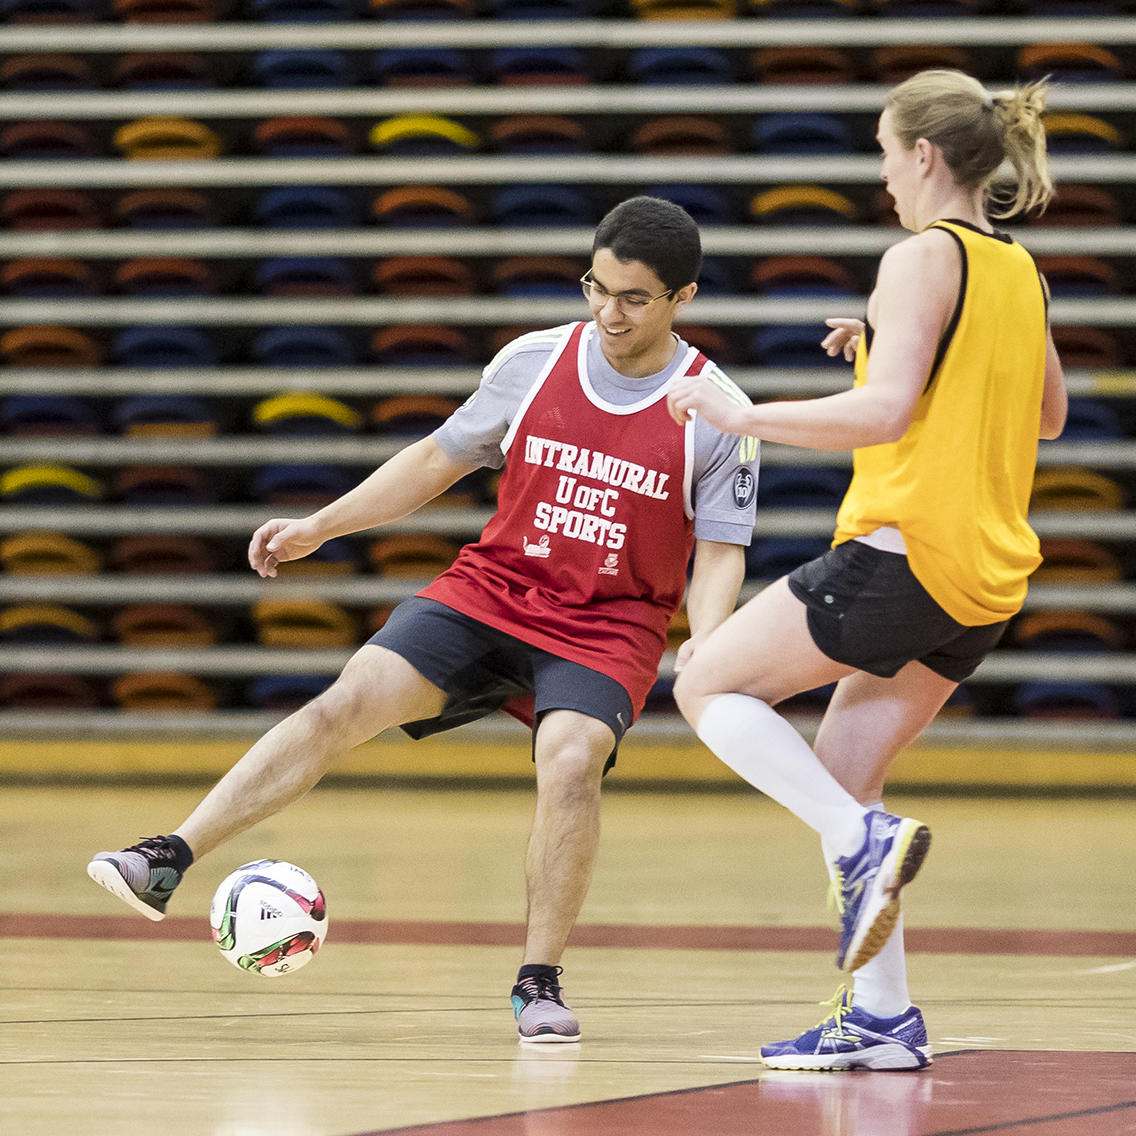 coed-soccer game in a gym